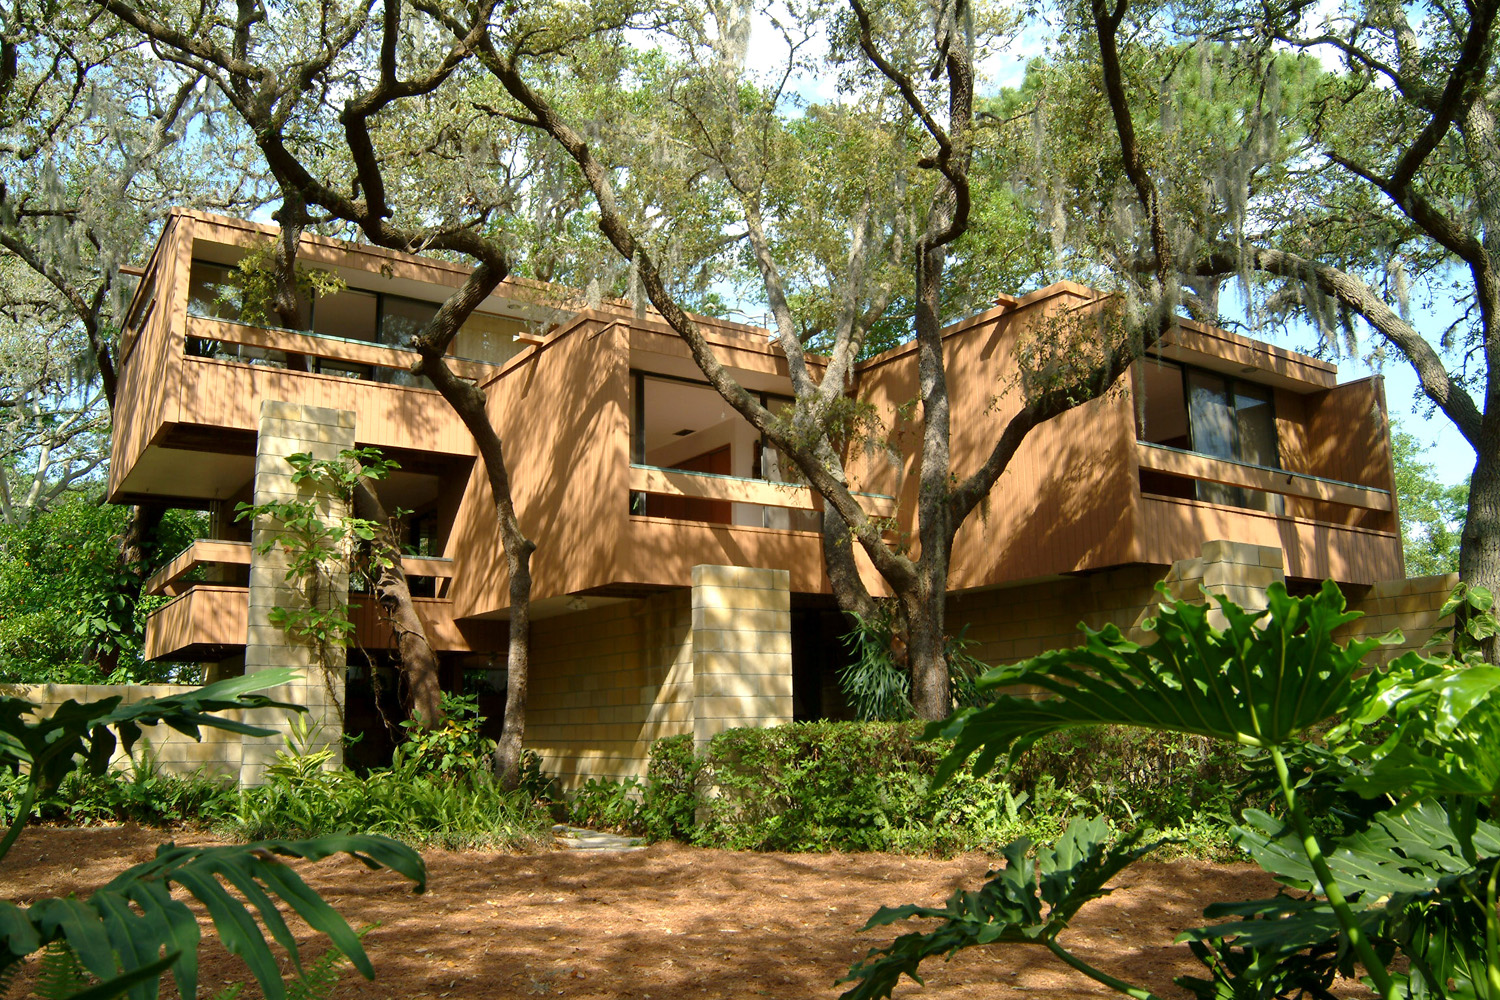 Sarasota Tampa Clearwater St Petersburg Florida Modern Architecture For Sale Martie